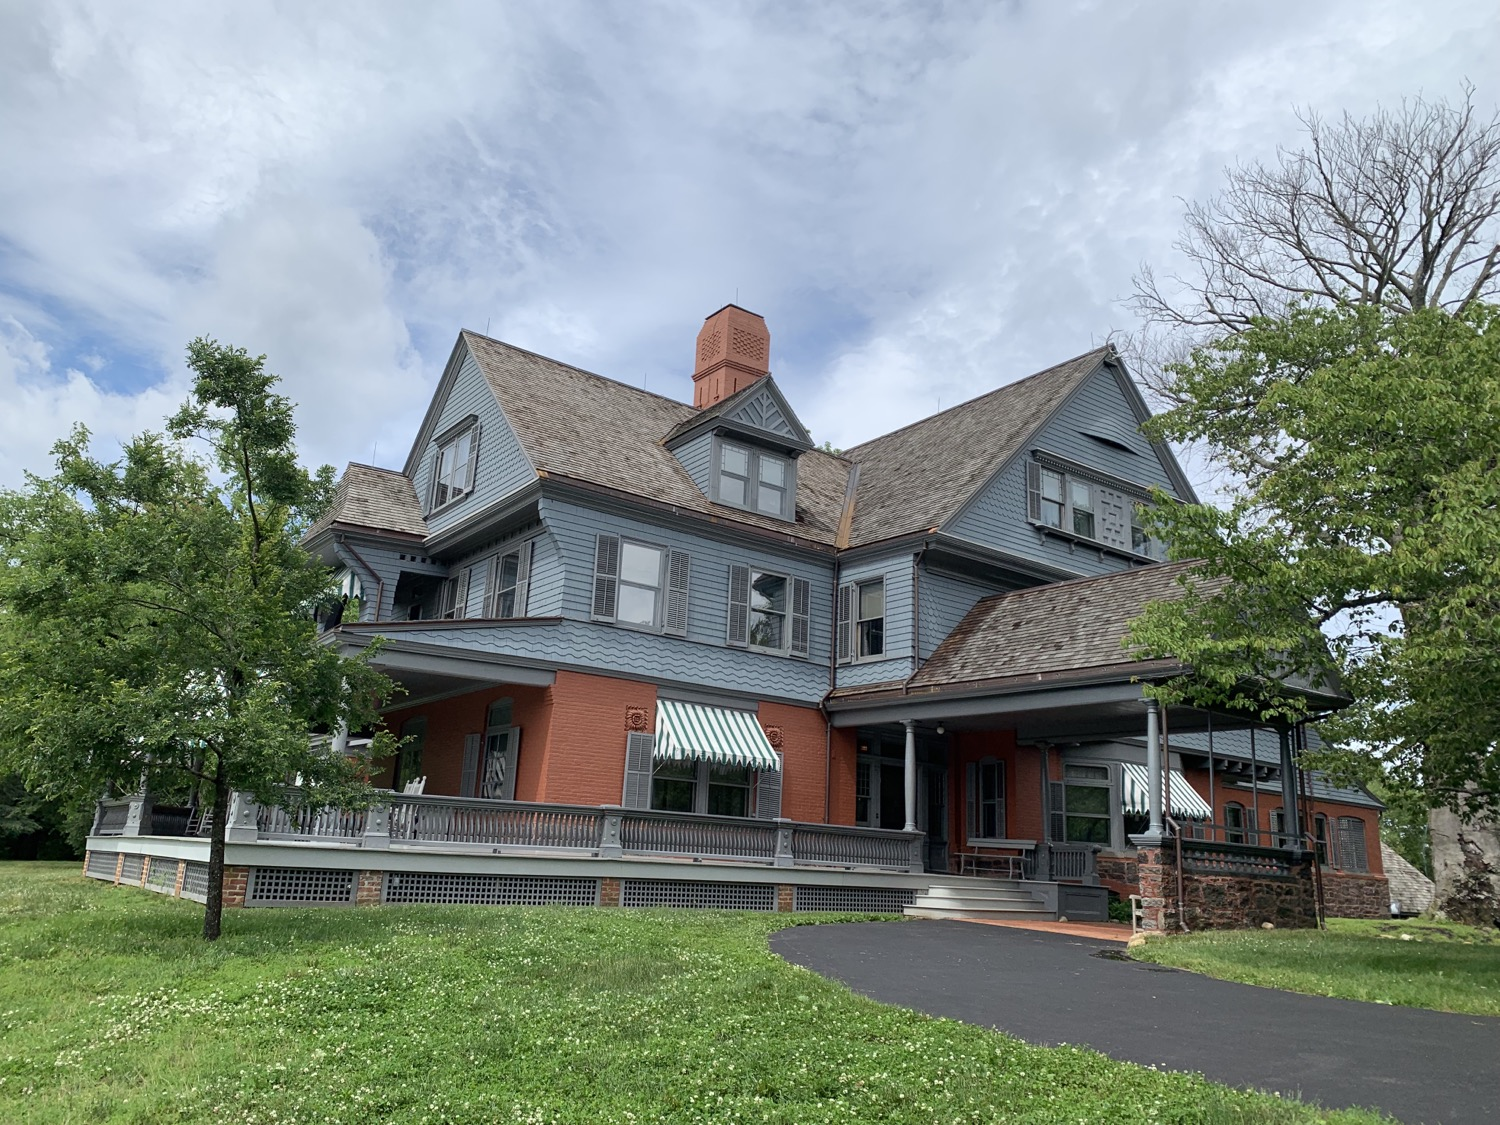 Sagamore Hill, home of Teddy and Edith Roosevelt